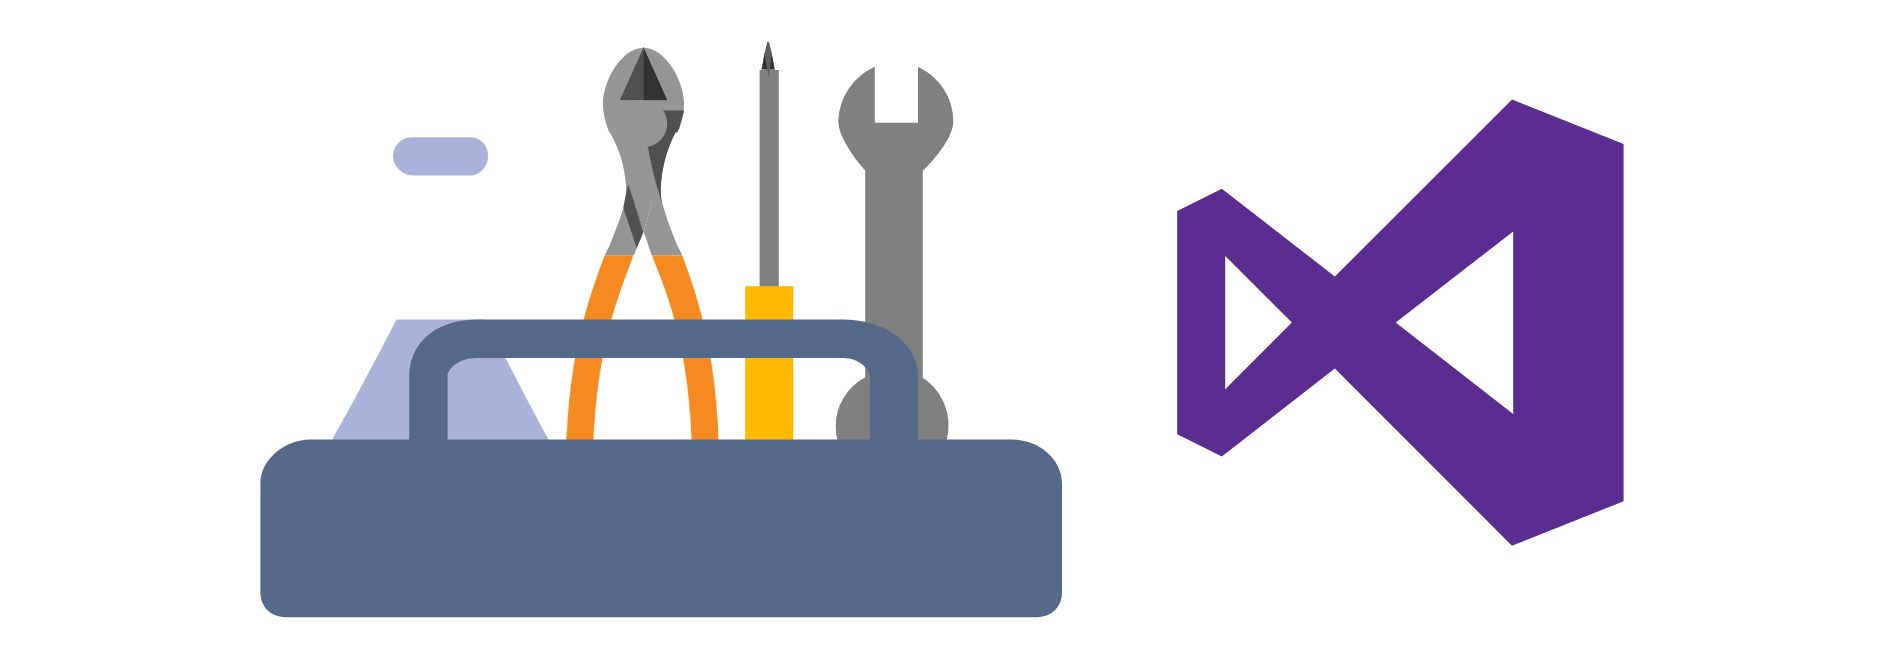 How to run Visual Studio 2017 projects using Build Tools for Visual